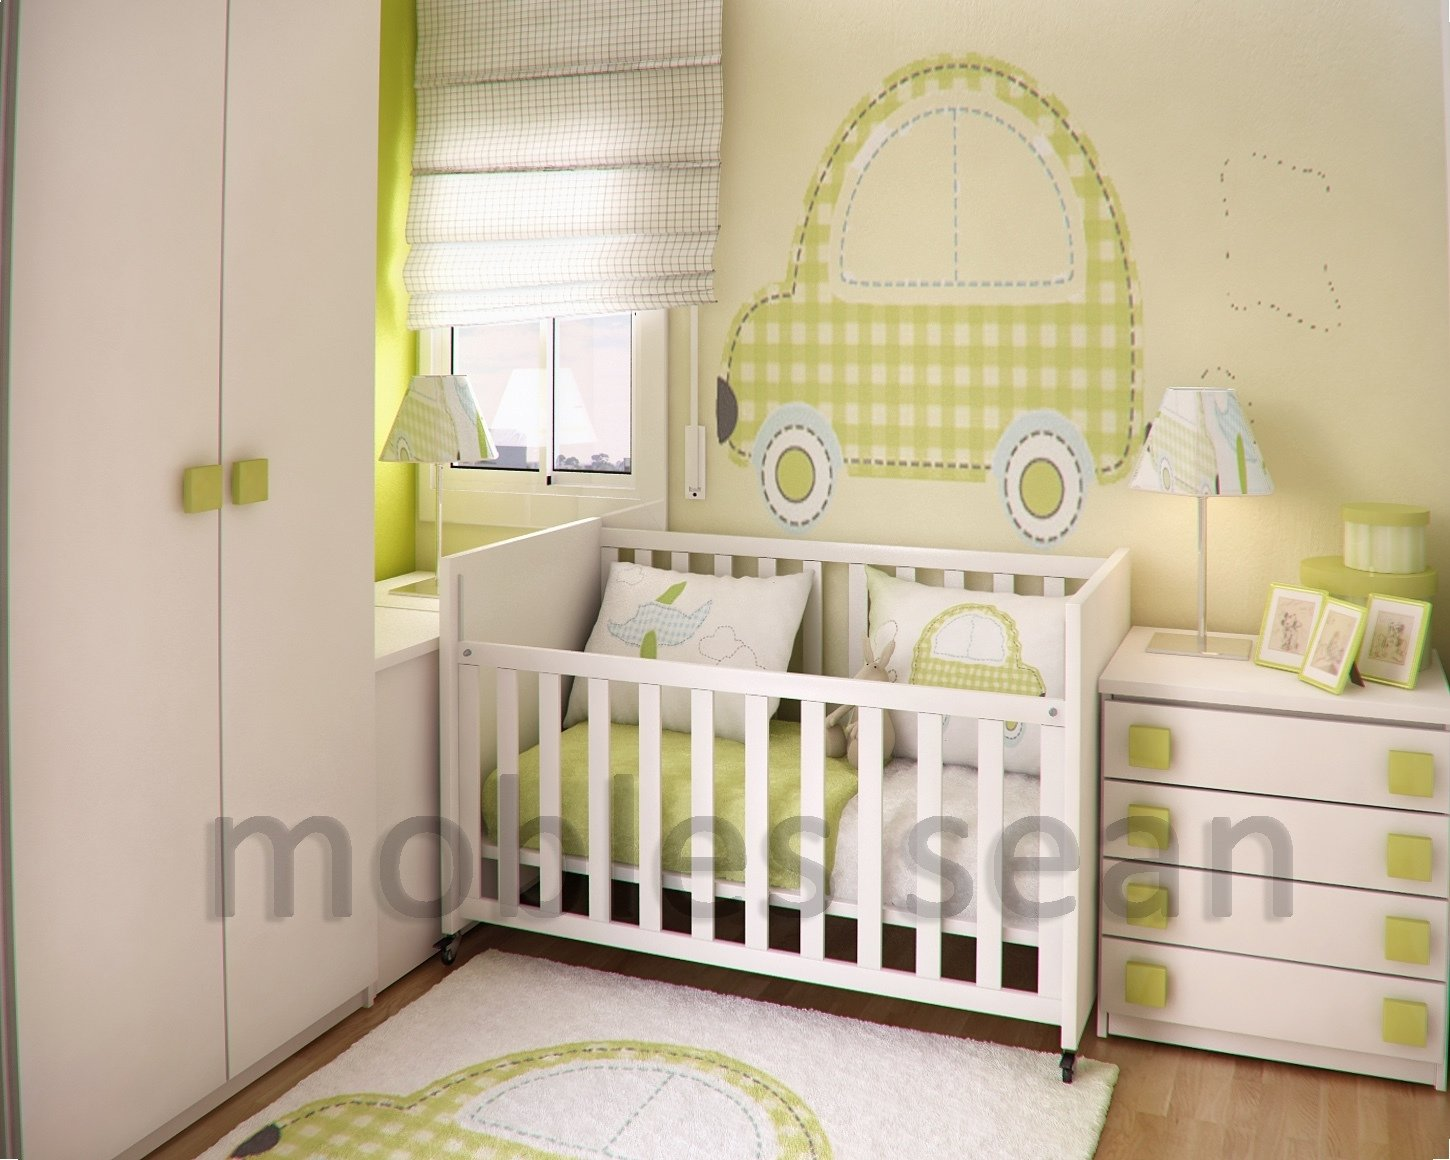 10 Gorgeous Nursery Ideas For Small Rooms 48 baby room ideas for small rooms best 25 small baby rooms ideas 2020